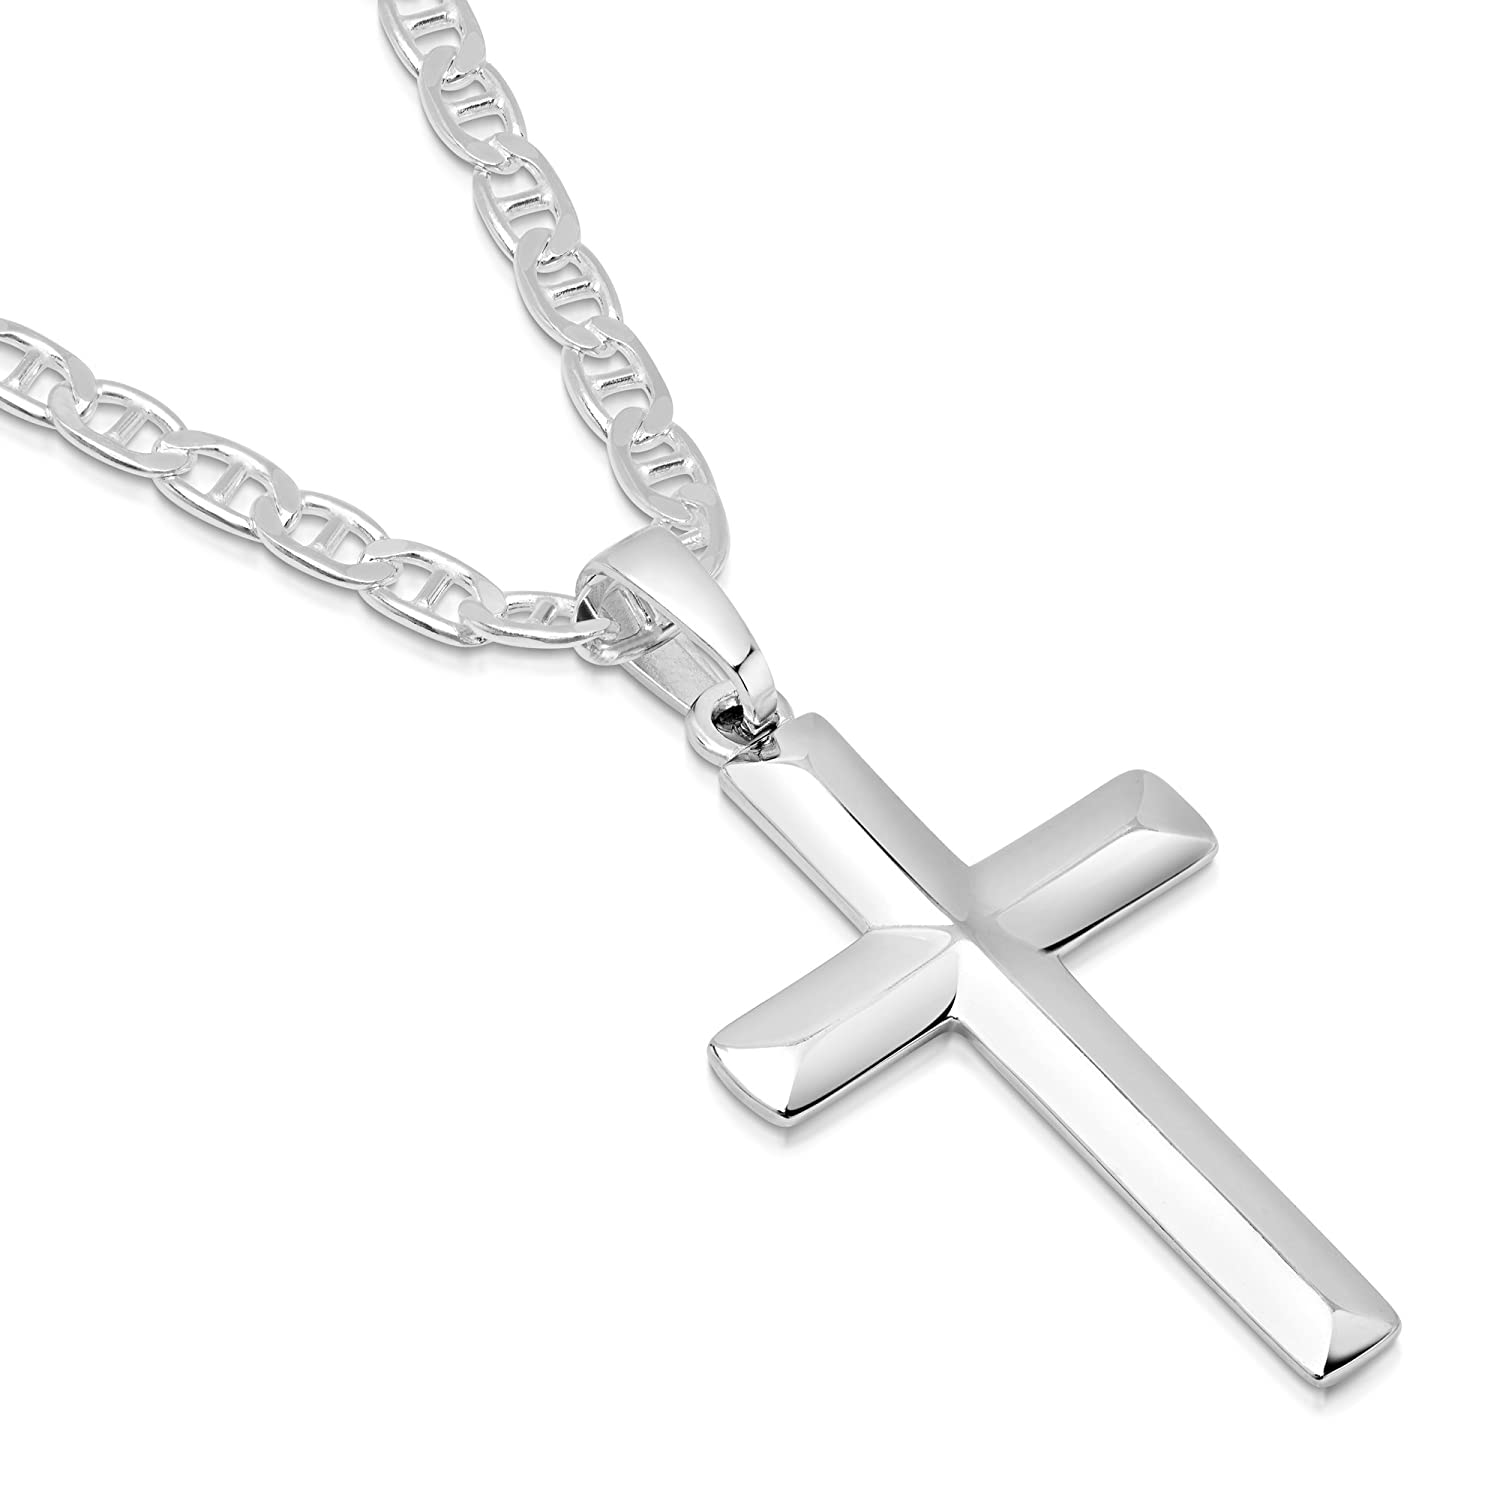 XP Jewelry Solid Sterling Silver Cross Necklace 2mm Mariner Chain - Choose Length and Pendant Style XP-MARINER-13429-18